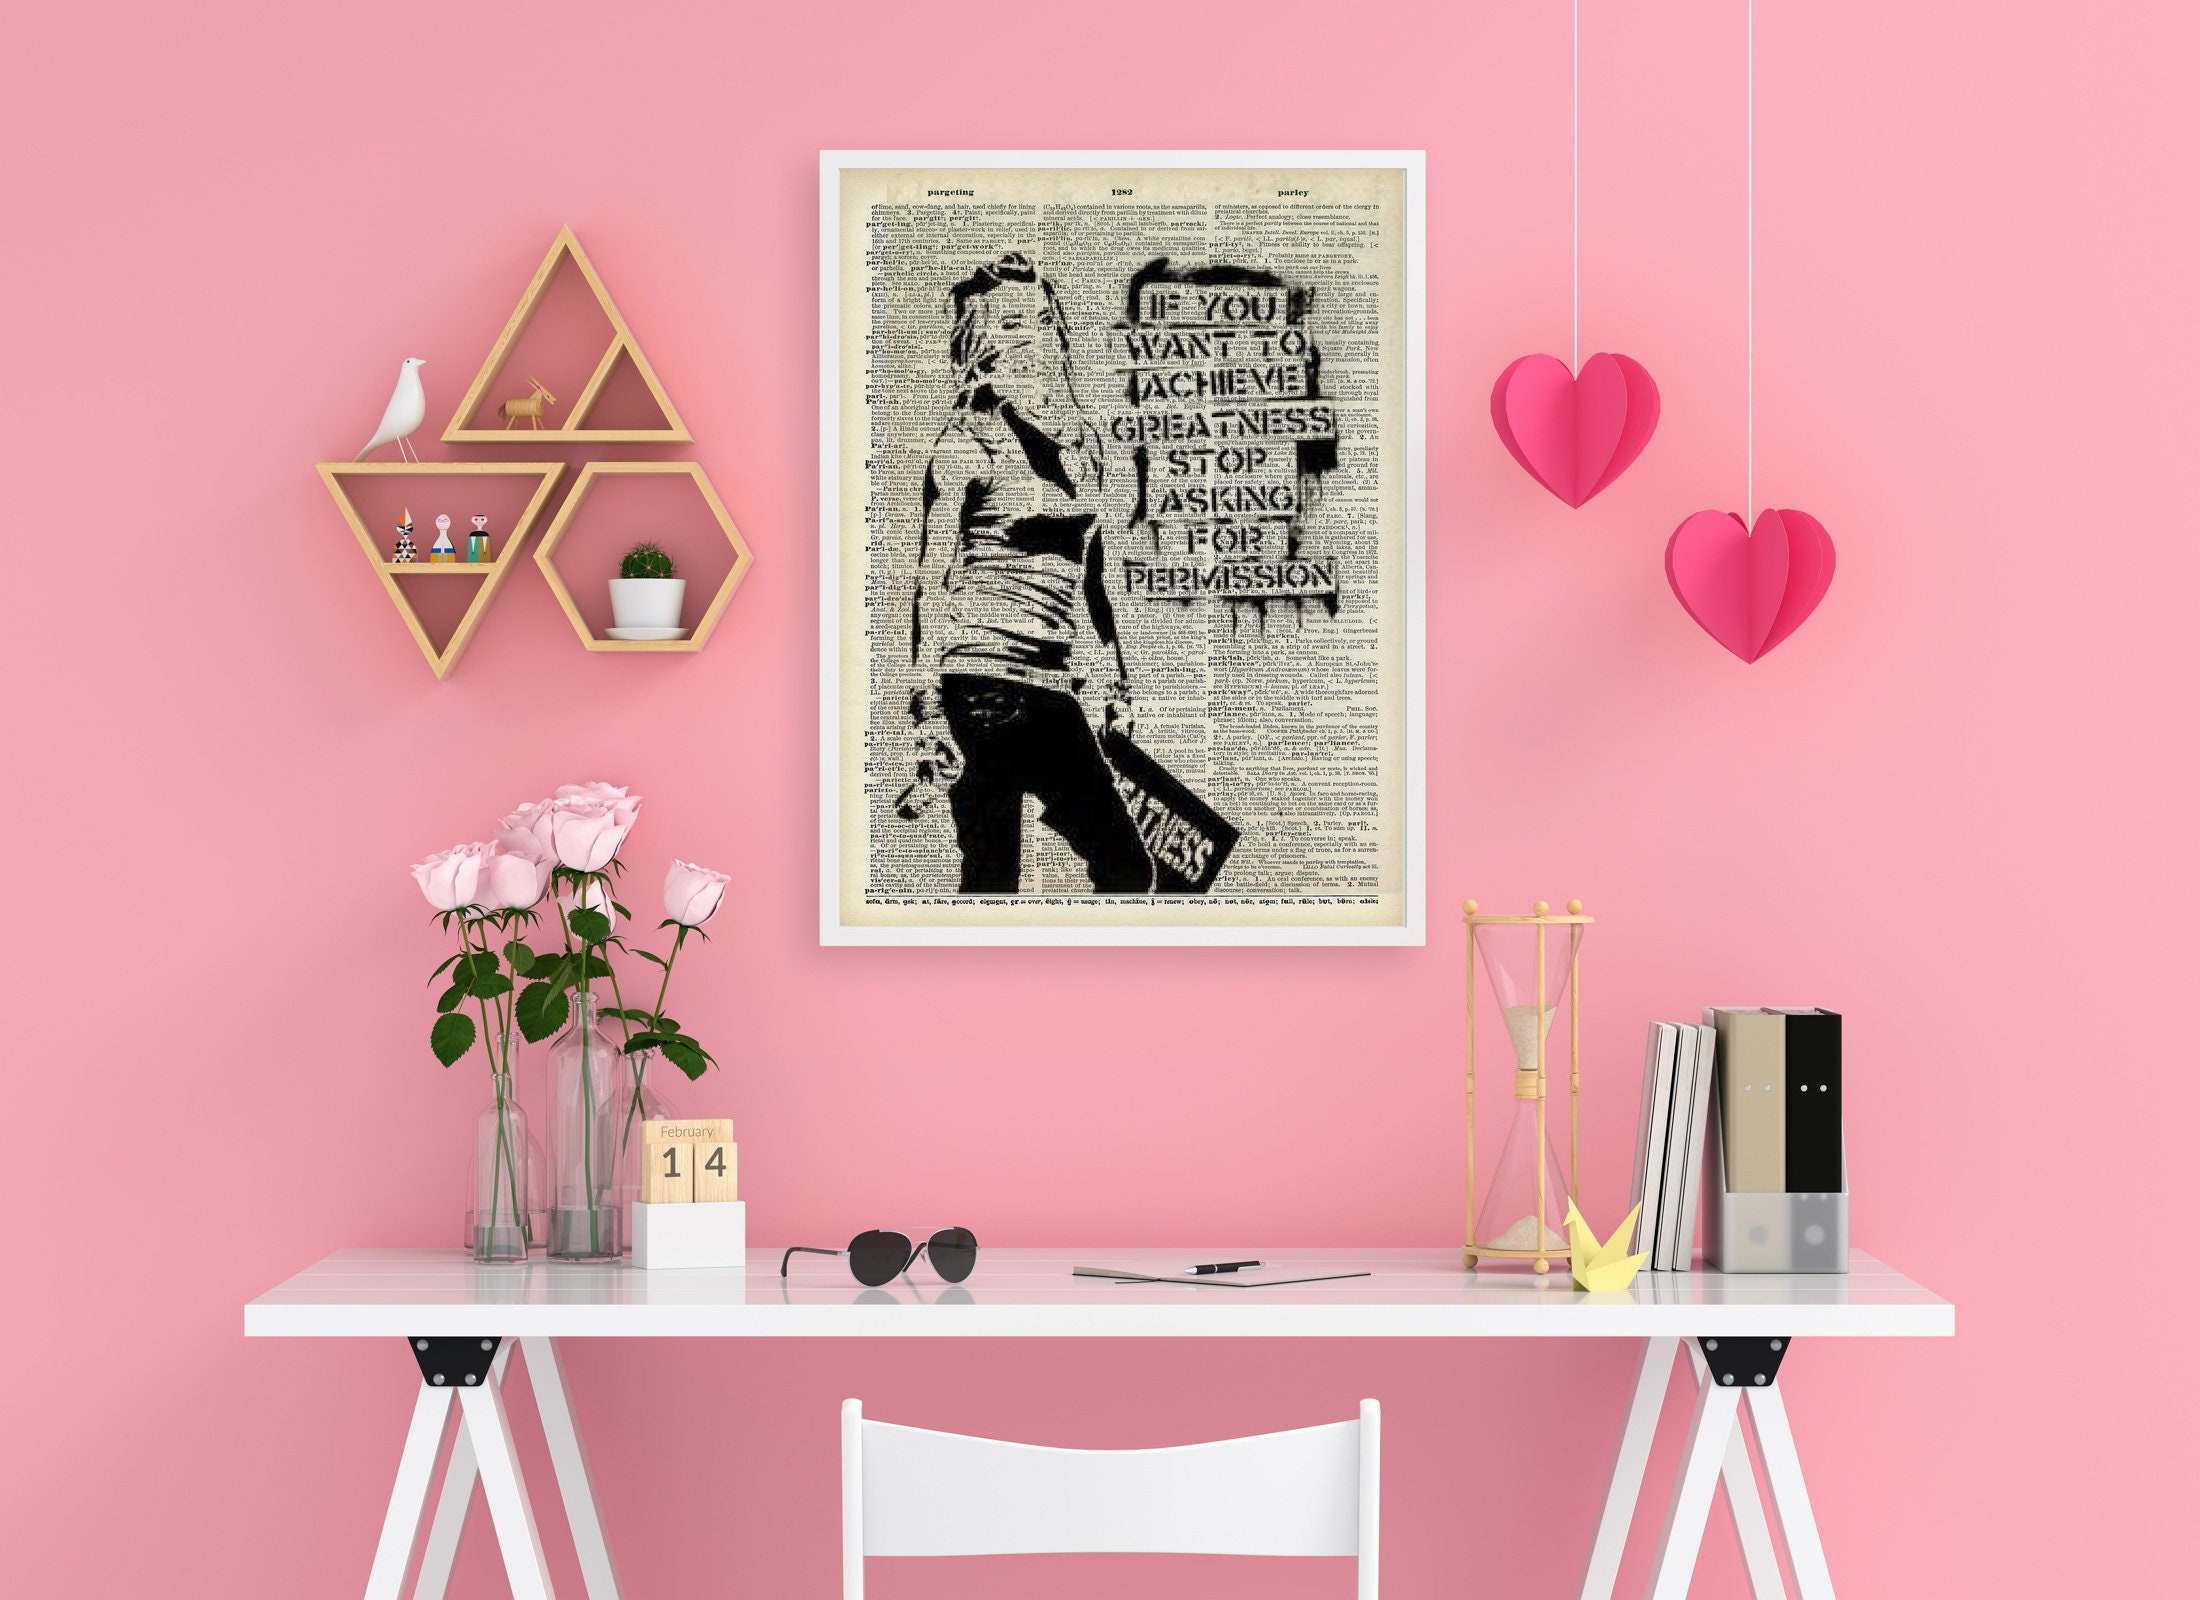 Banksy Wall Art - Dictionary Art - Banksy Print Vintage Wall Decor - If you want to succeed- do not wait for any permissions